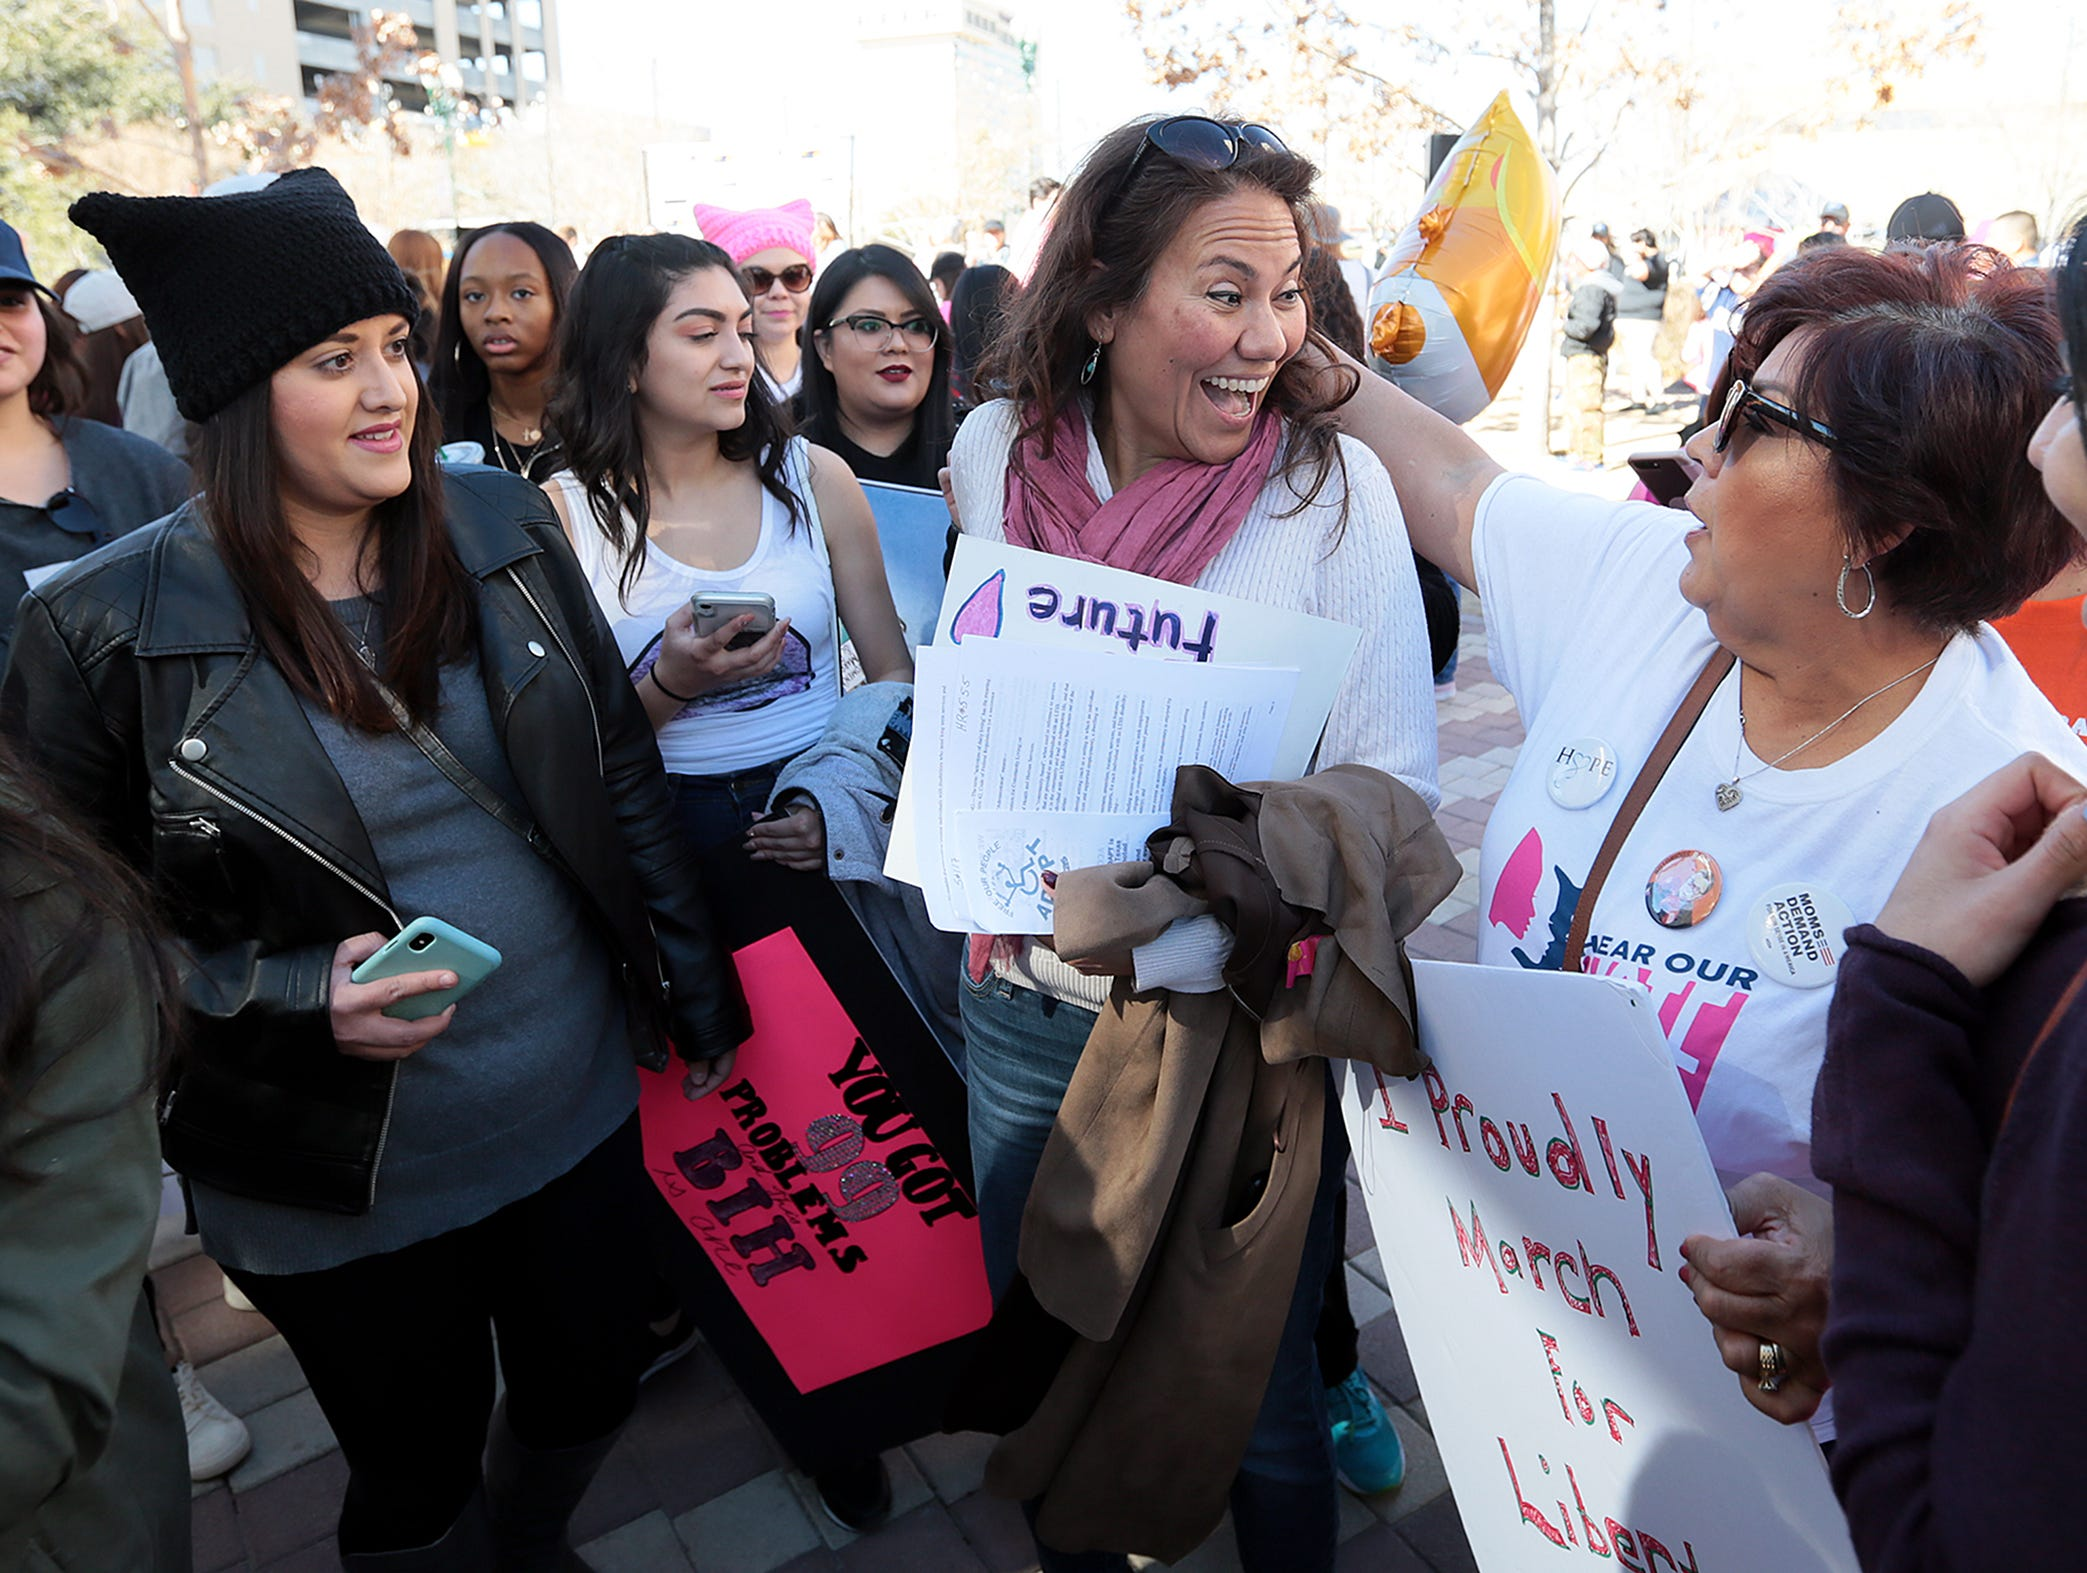 U.S. Rep. Veronica Escobar, D-El Paso, speaks with supporters Saturday, Jan. 19, 2019, during the El Paso Women's March in San Jacinto Plaza.